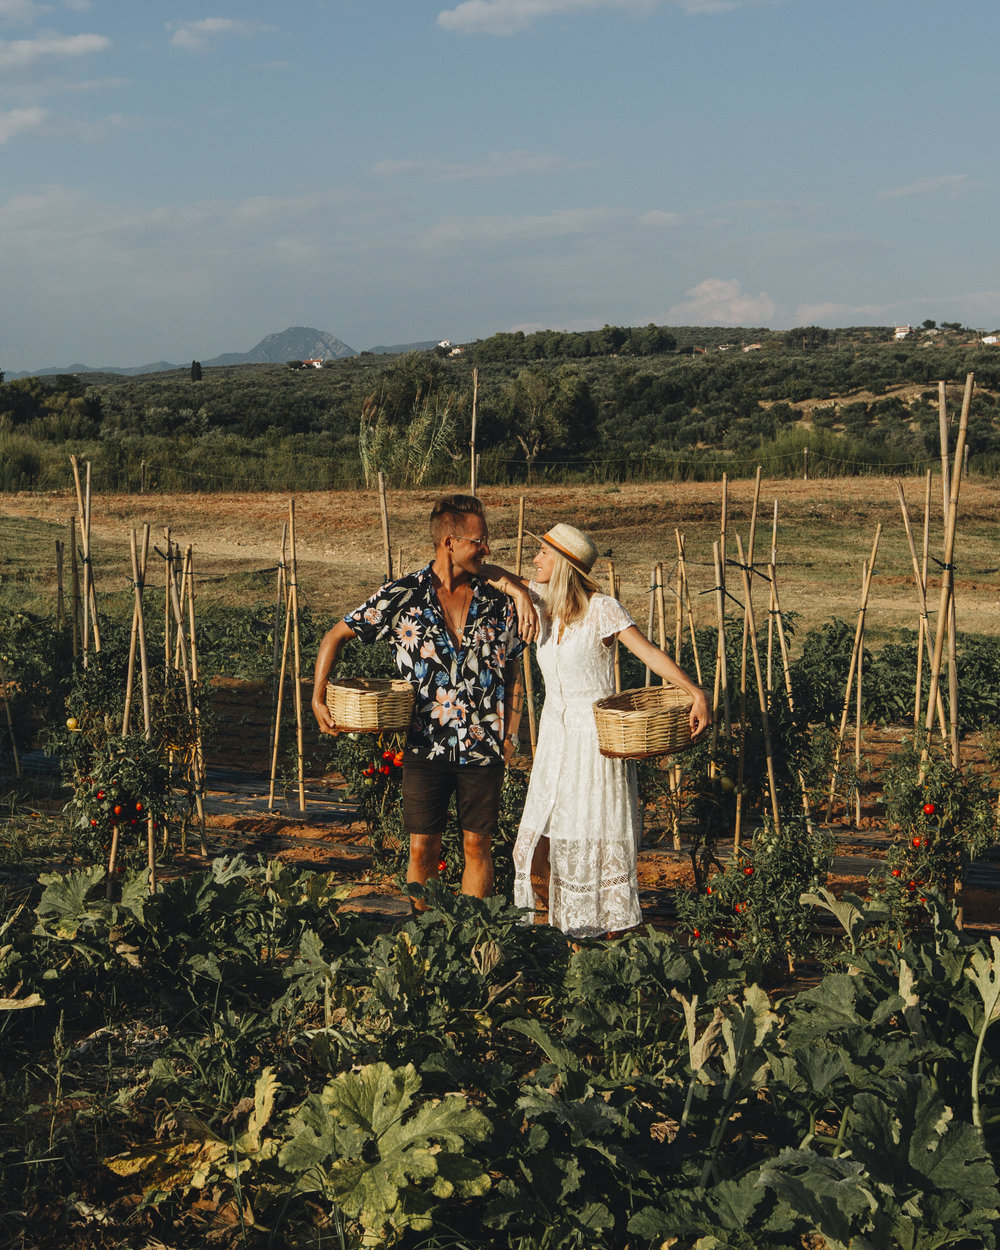 farm-to-table experience in Crete, Greece